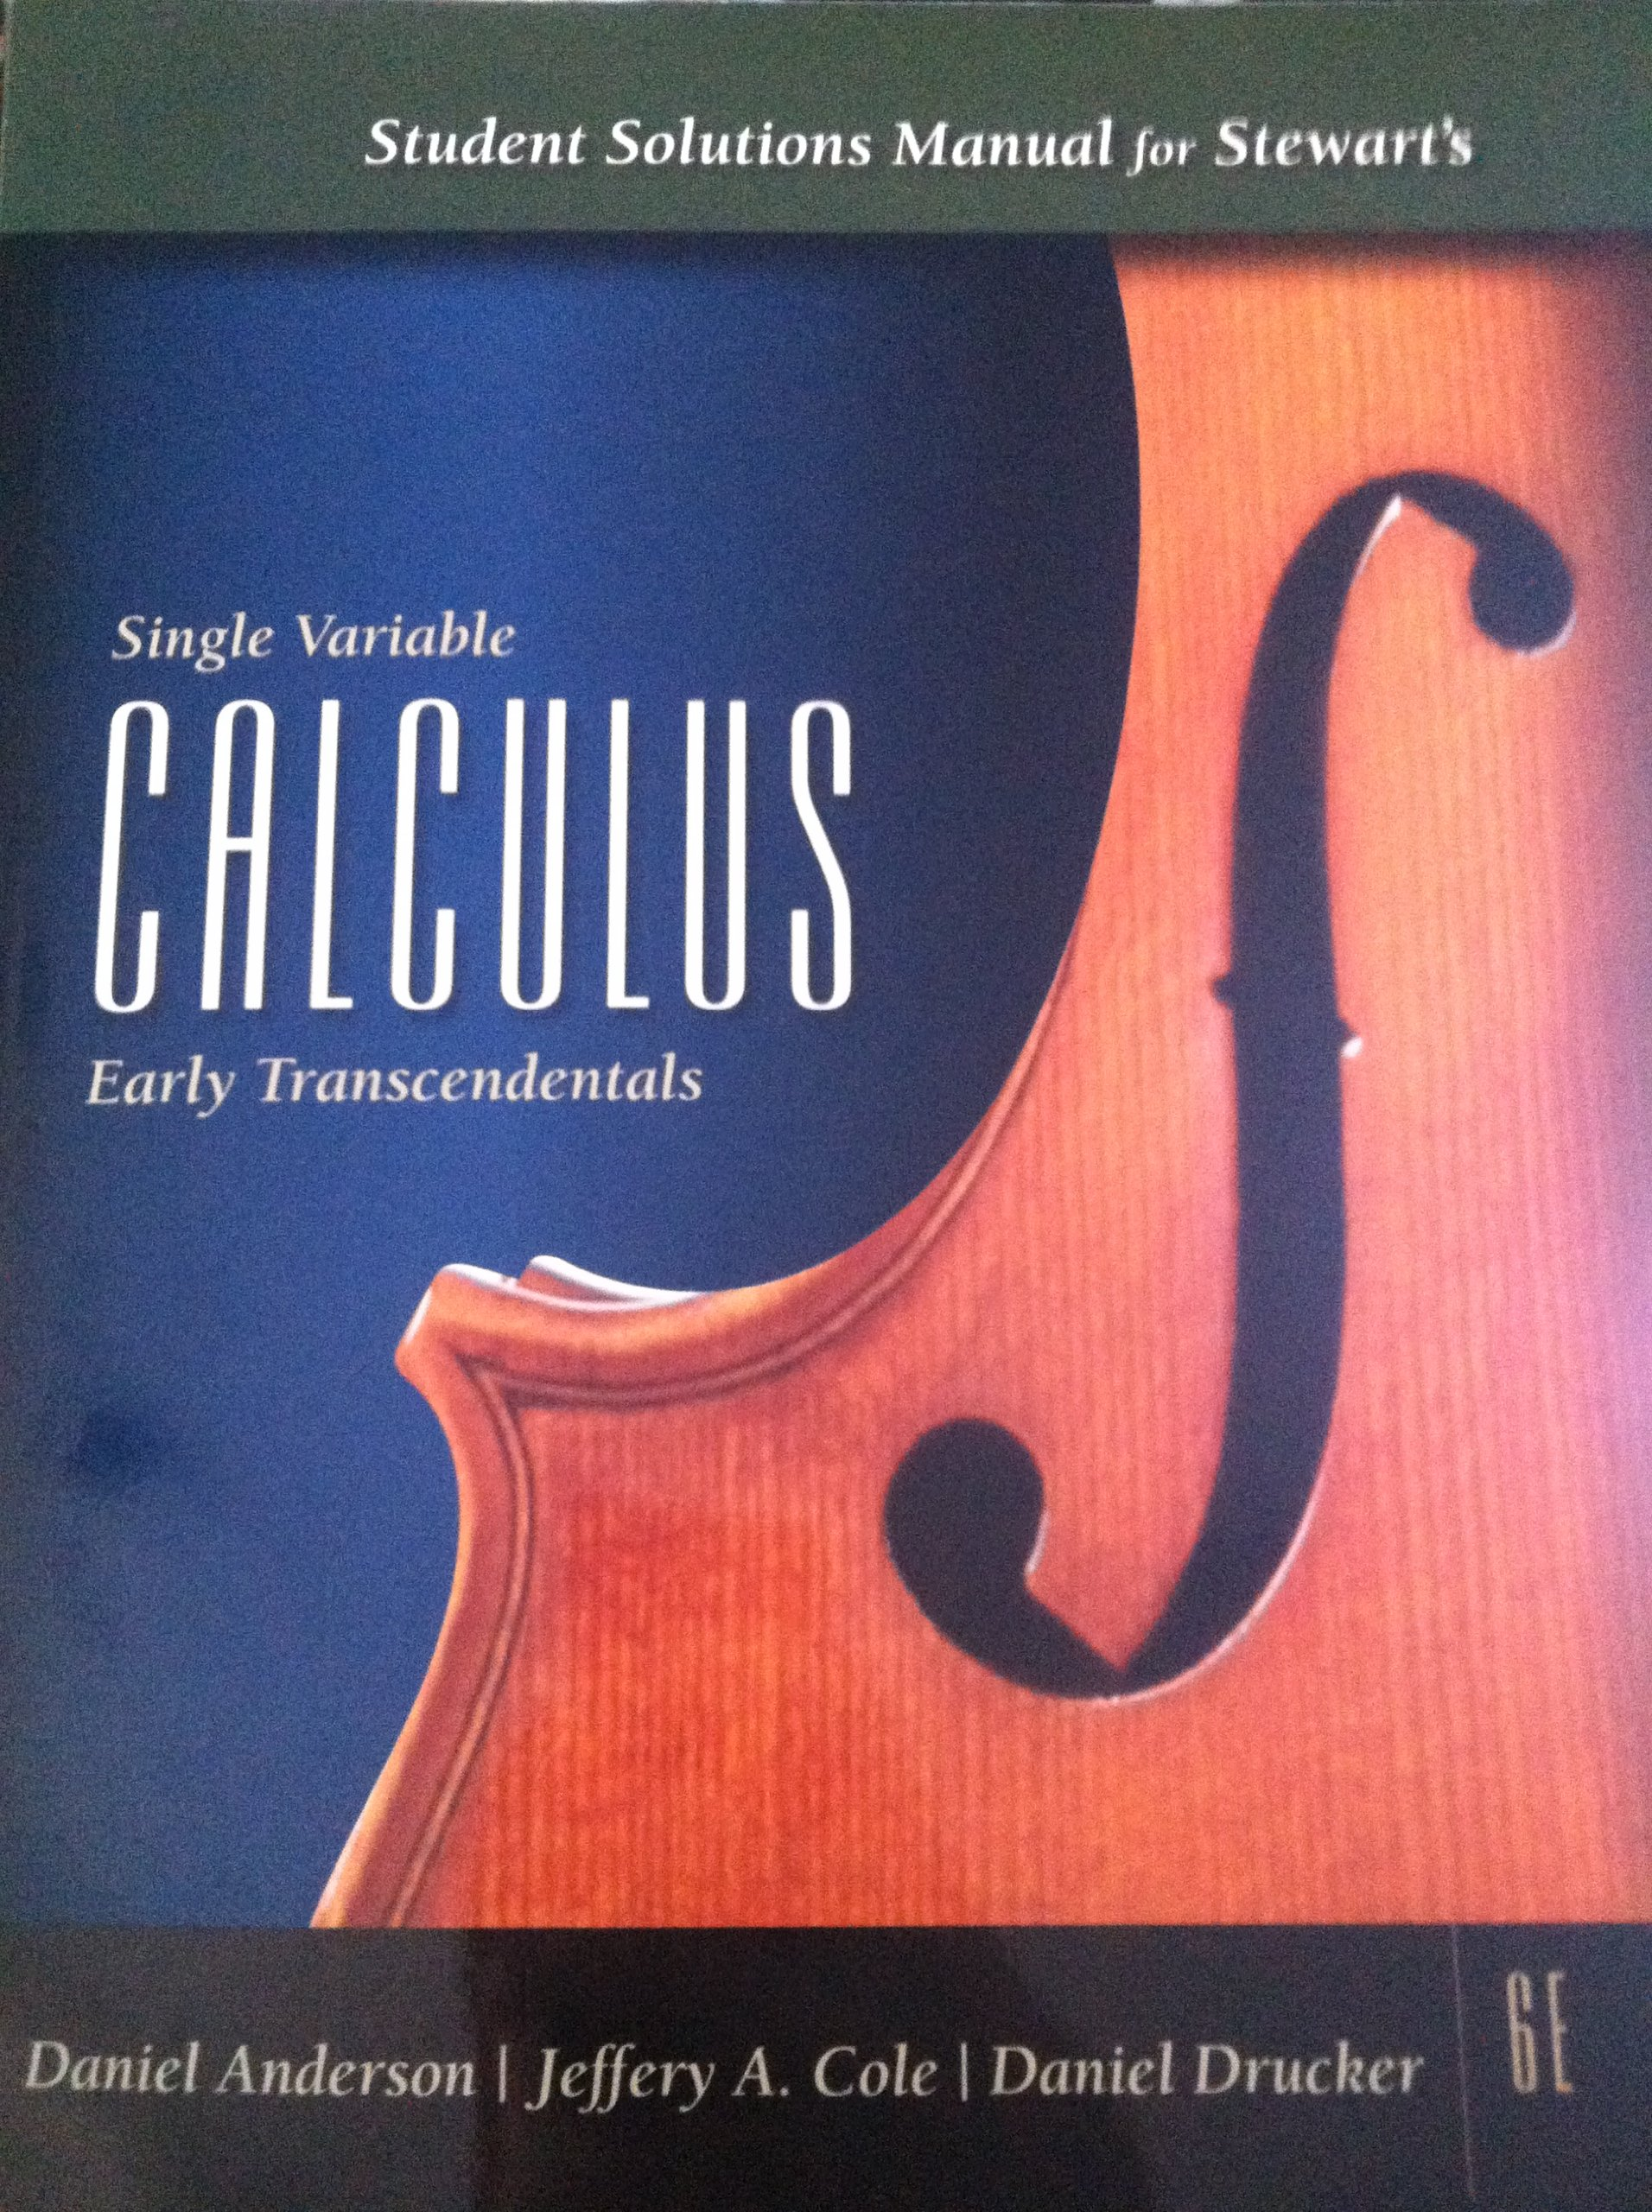 Calculus early transcendentals 8th edition pdf vatoz calculus early transcendentals 8th edition pdf single variable fandeluxe Image collections